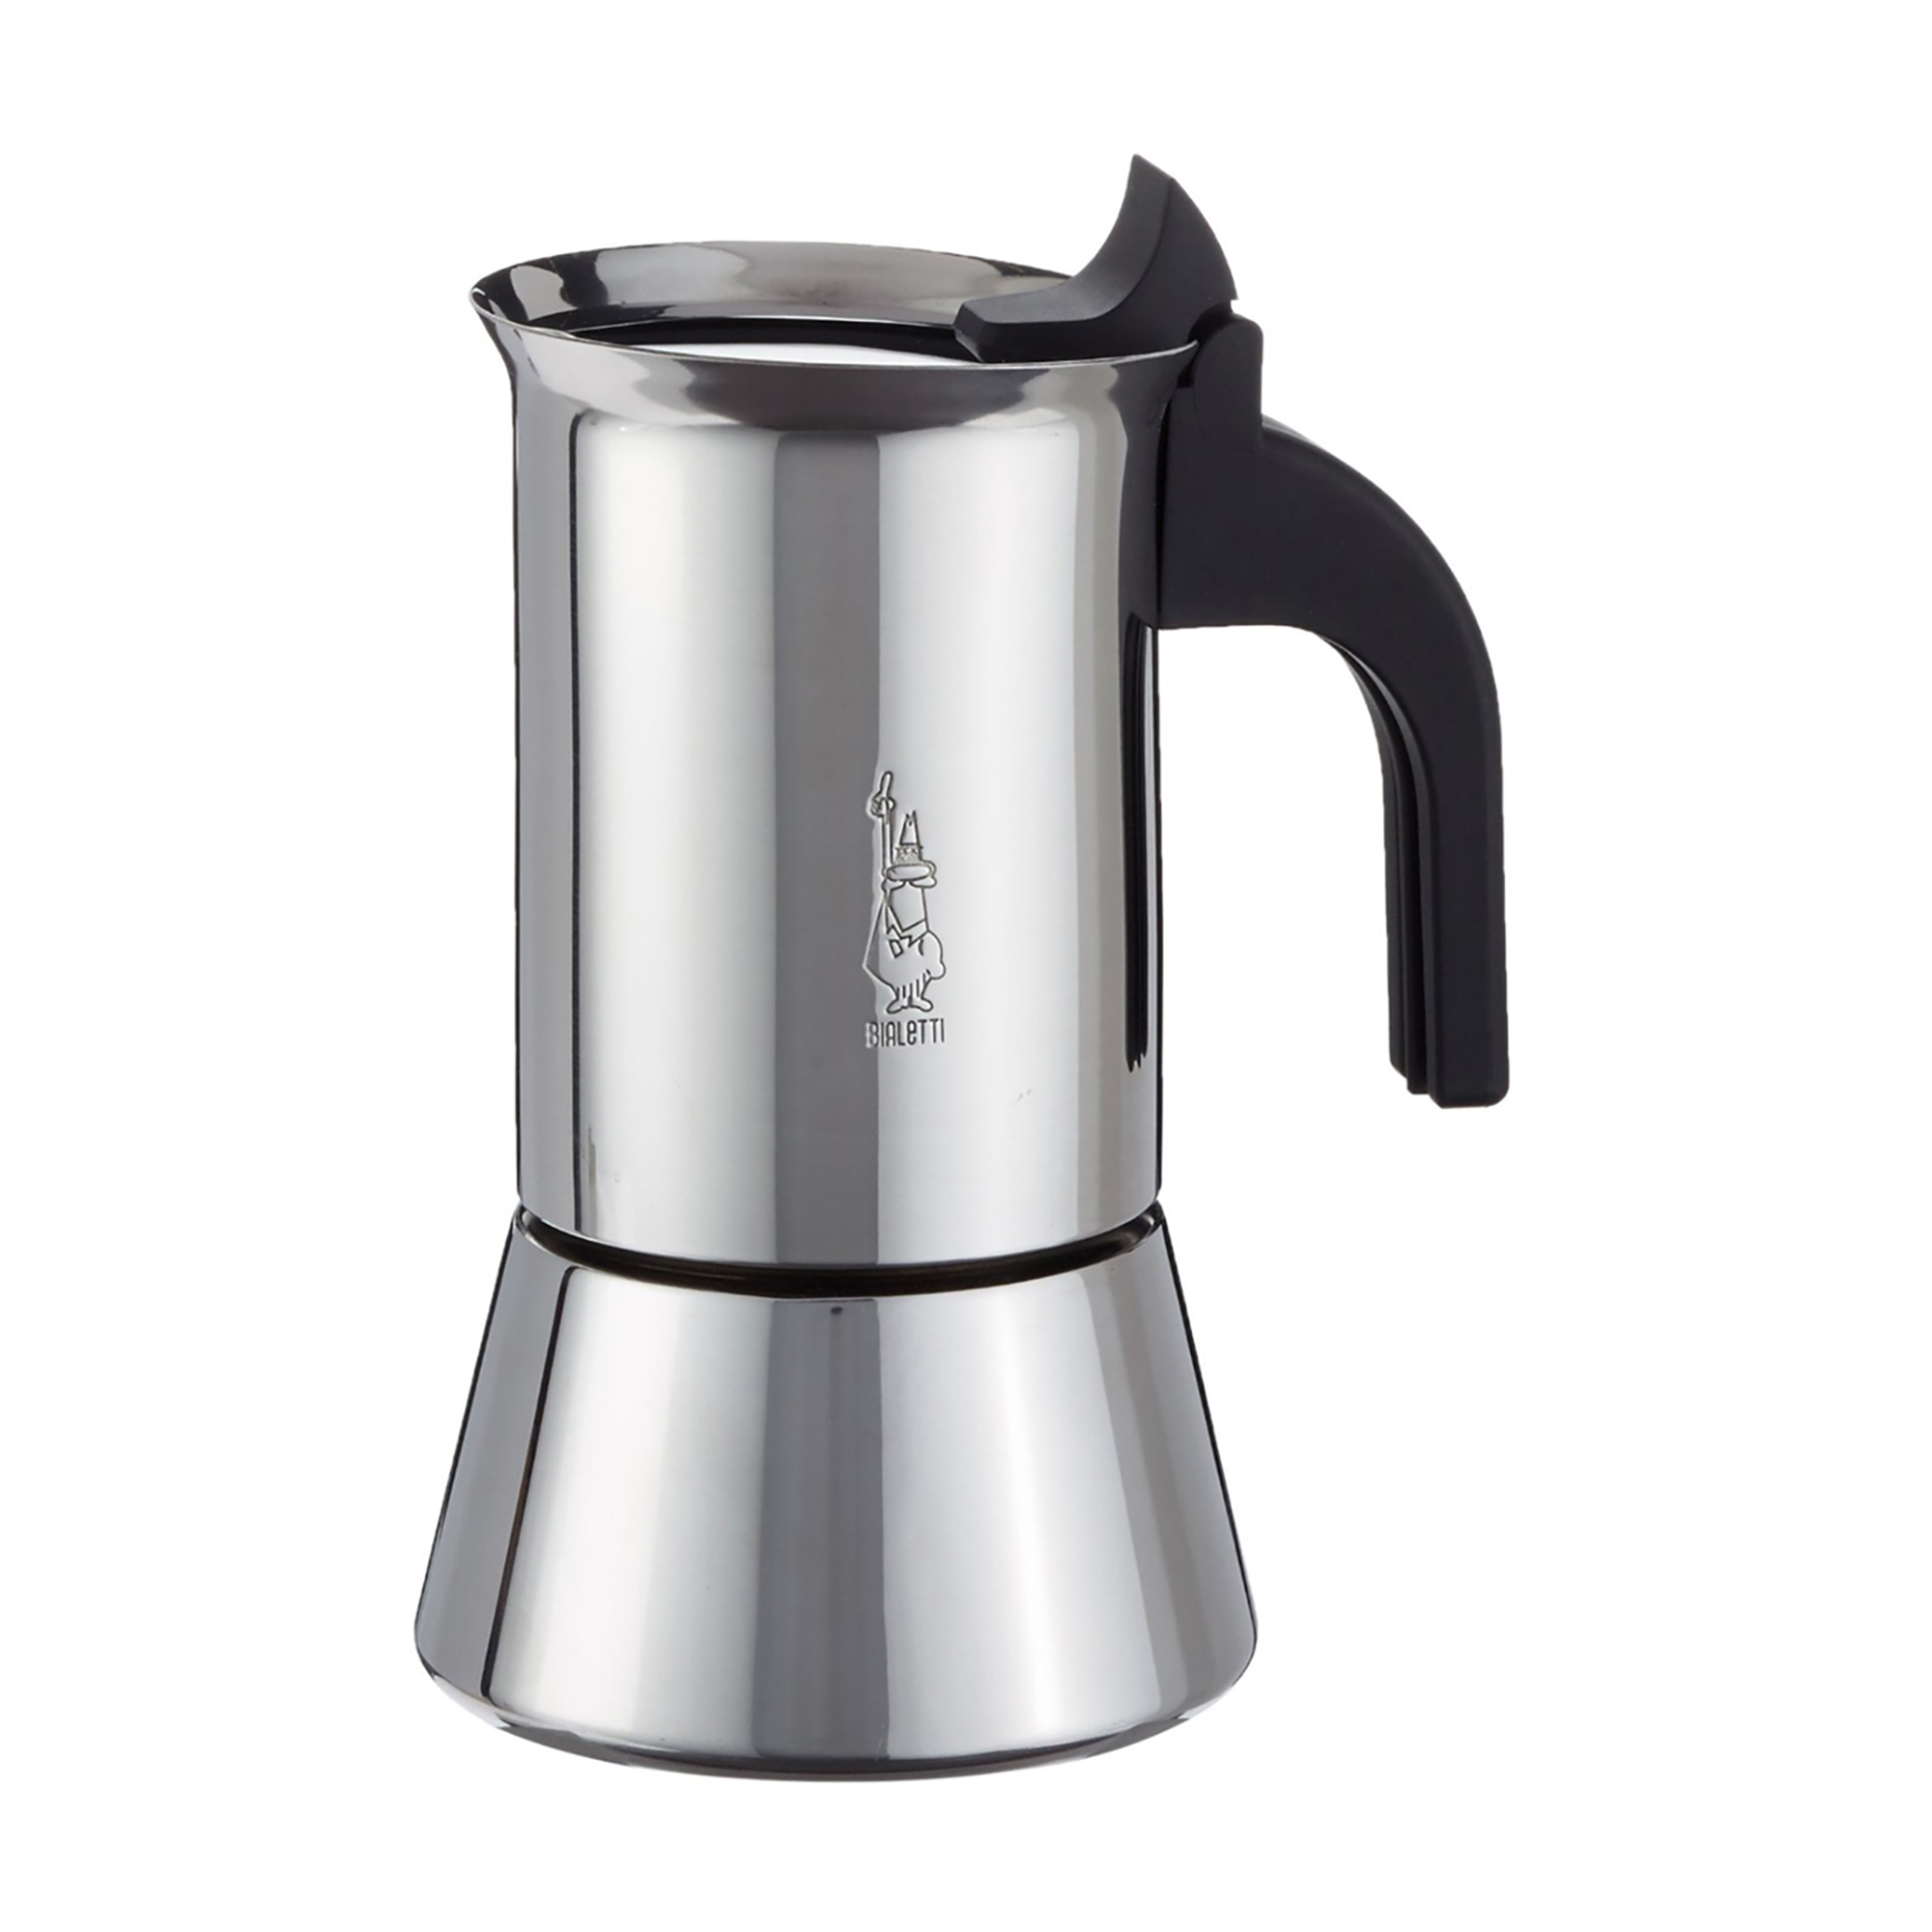 Image of   Bialetti Venus - 4 kopper